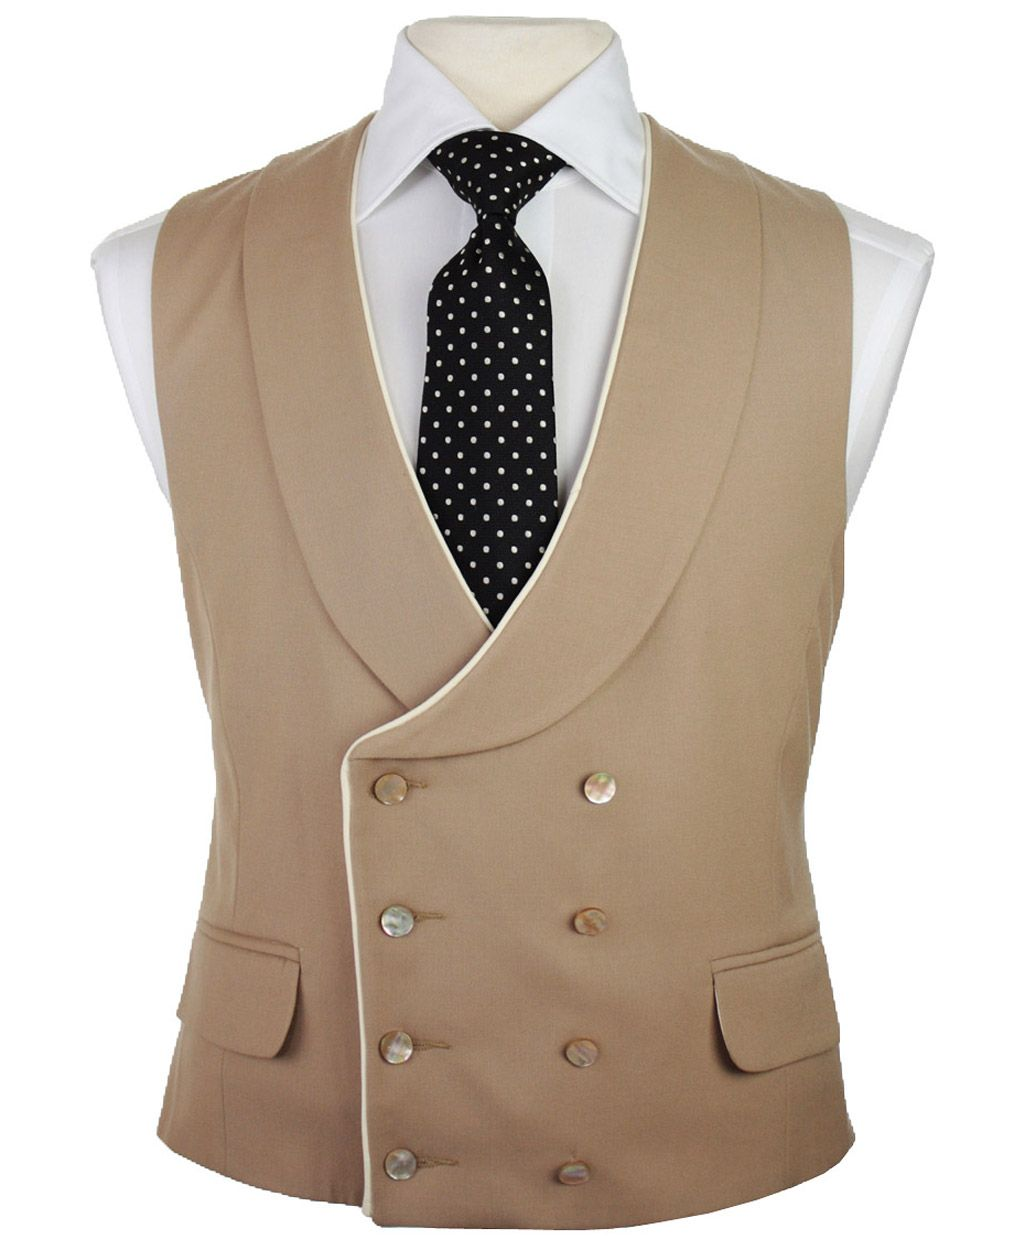 Our extensive men's vest collection includes luxury vests ideal for weddings and other formal occasions, as well as work and everyday vests. Our luxury vests come in a variety of colours, fabrics and patterns which can be matched perfectly with our handkerchief, tie and cravat collections.